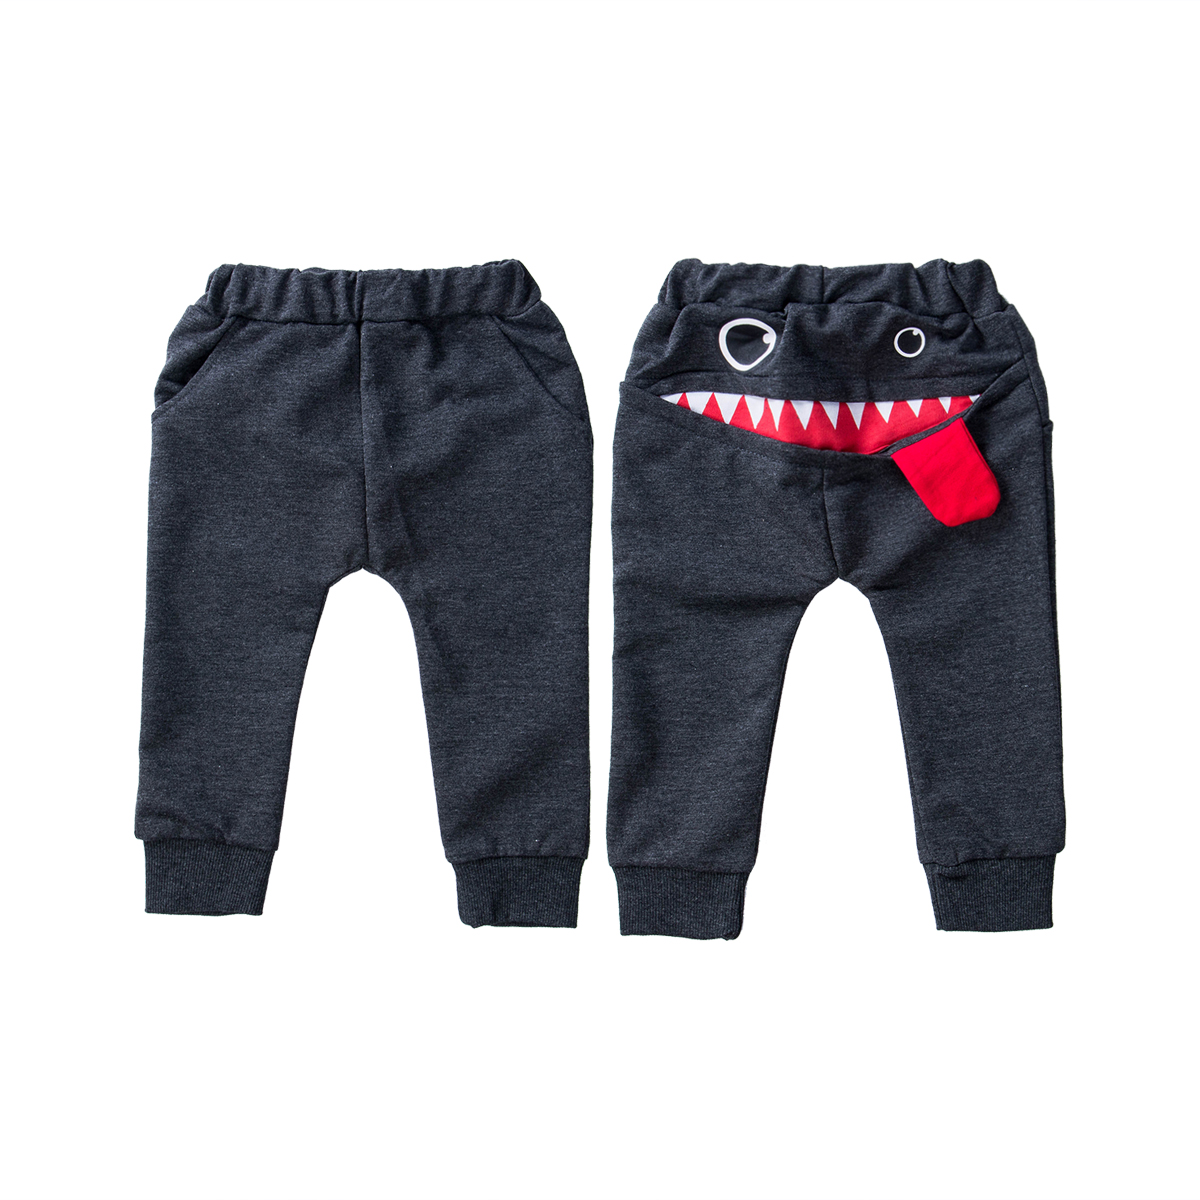 2019 trendy Toddler Baby Boy Cartoon Big Mouth Monster Print  Harem Pants baby boy clothes  Cotton Baggy Jogger Trousers 0-4Y